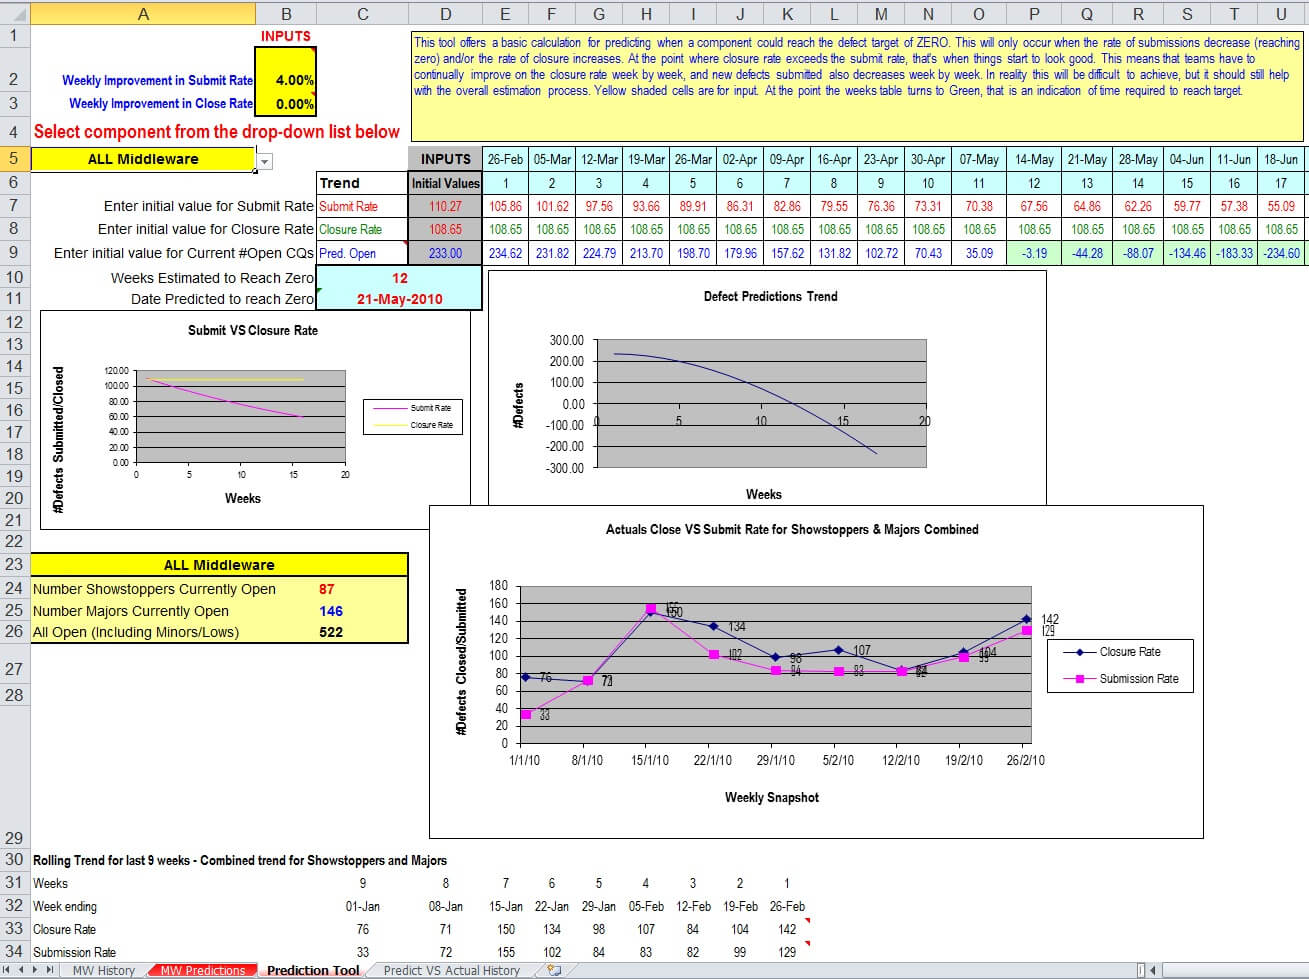 Defect Report Template Xls ] - Defect Tracking Template Xls Regarding Defect Report Template Xls